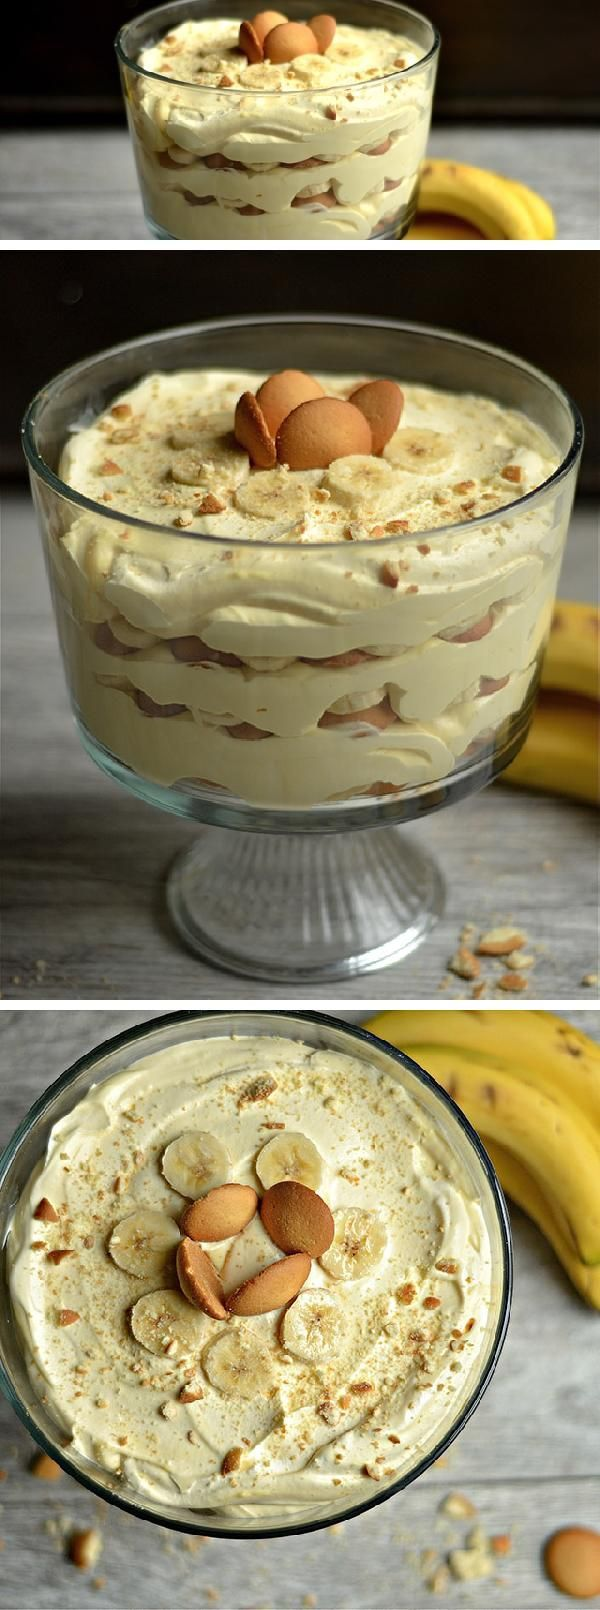 This layered BANANA PUDDING dessert is the ULTIMATE crowd pleaser! So delicious and so easy to make.